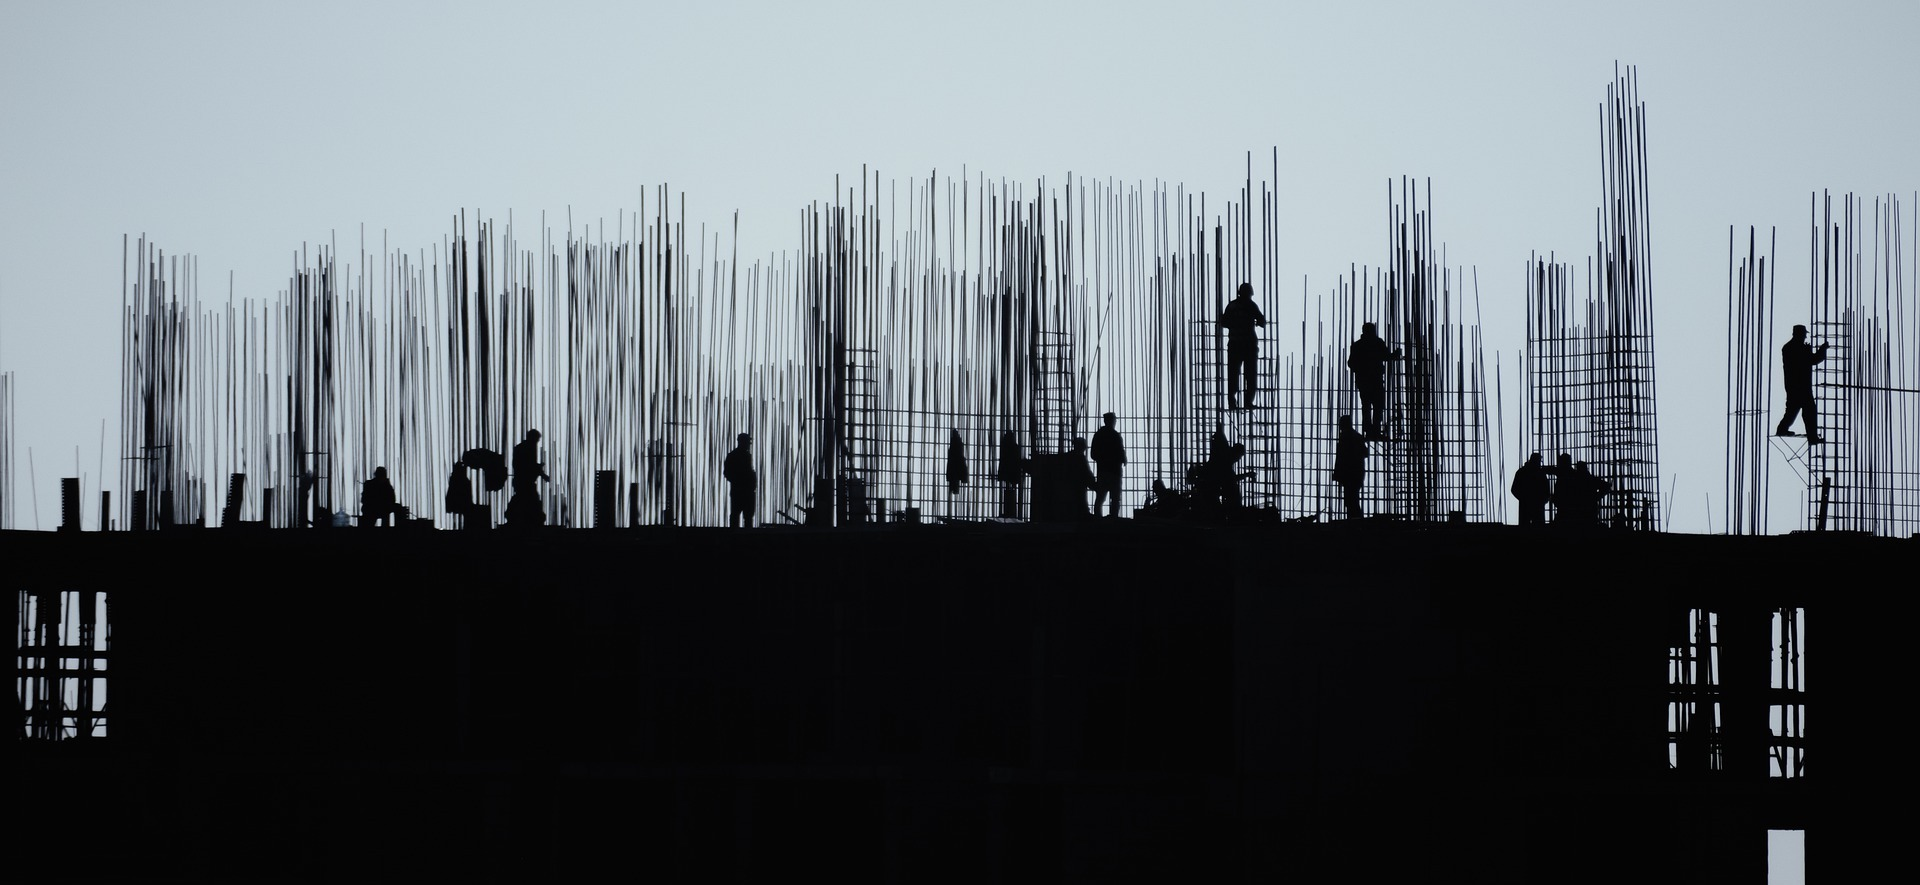 Rising to the challenge: a case study on managing multiple contractors across large geographies